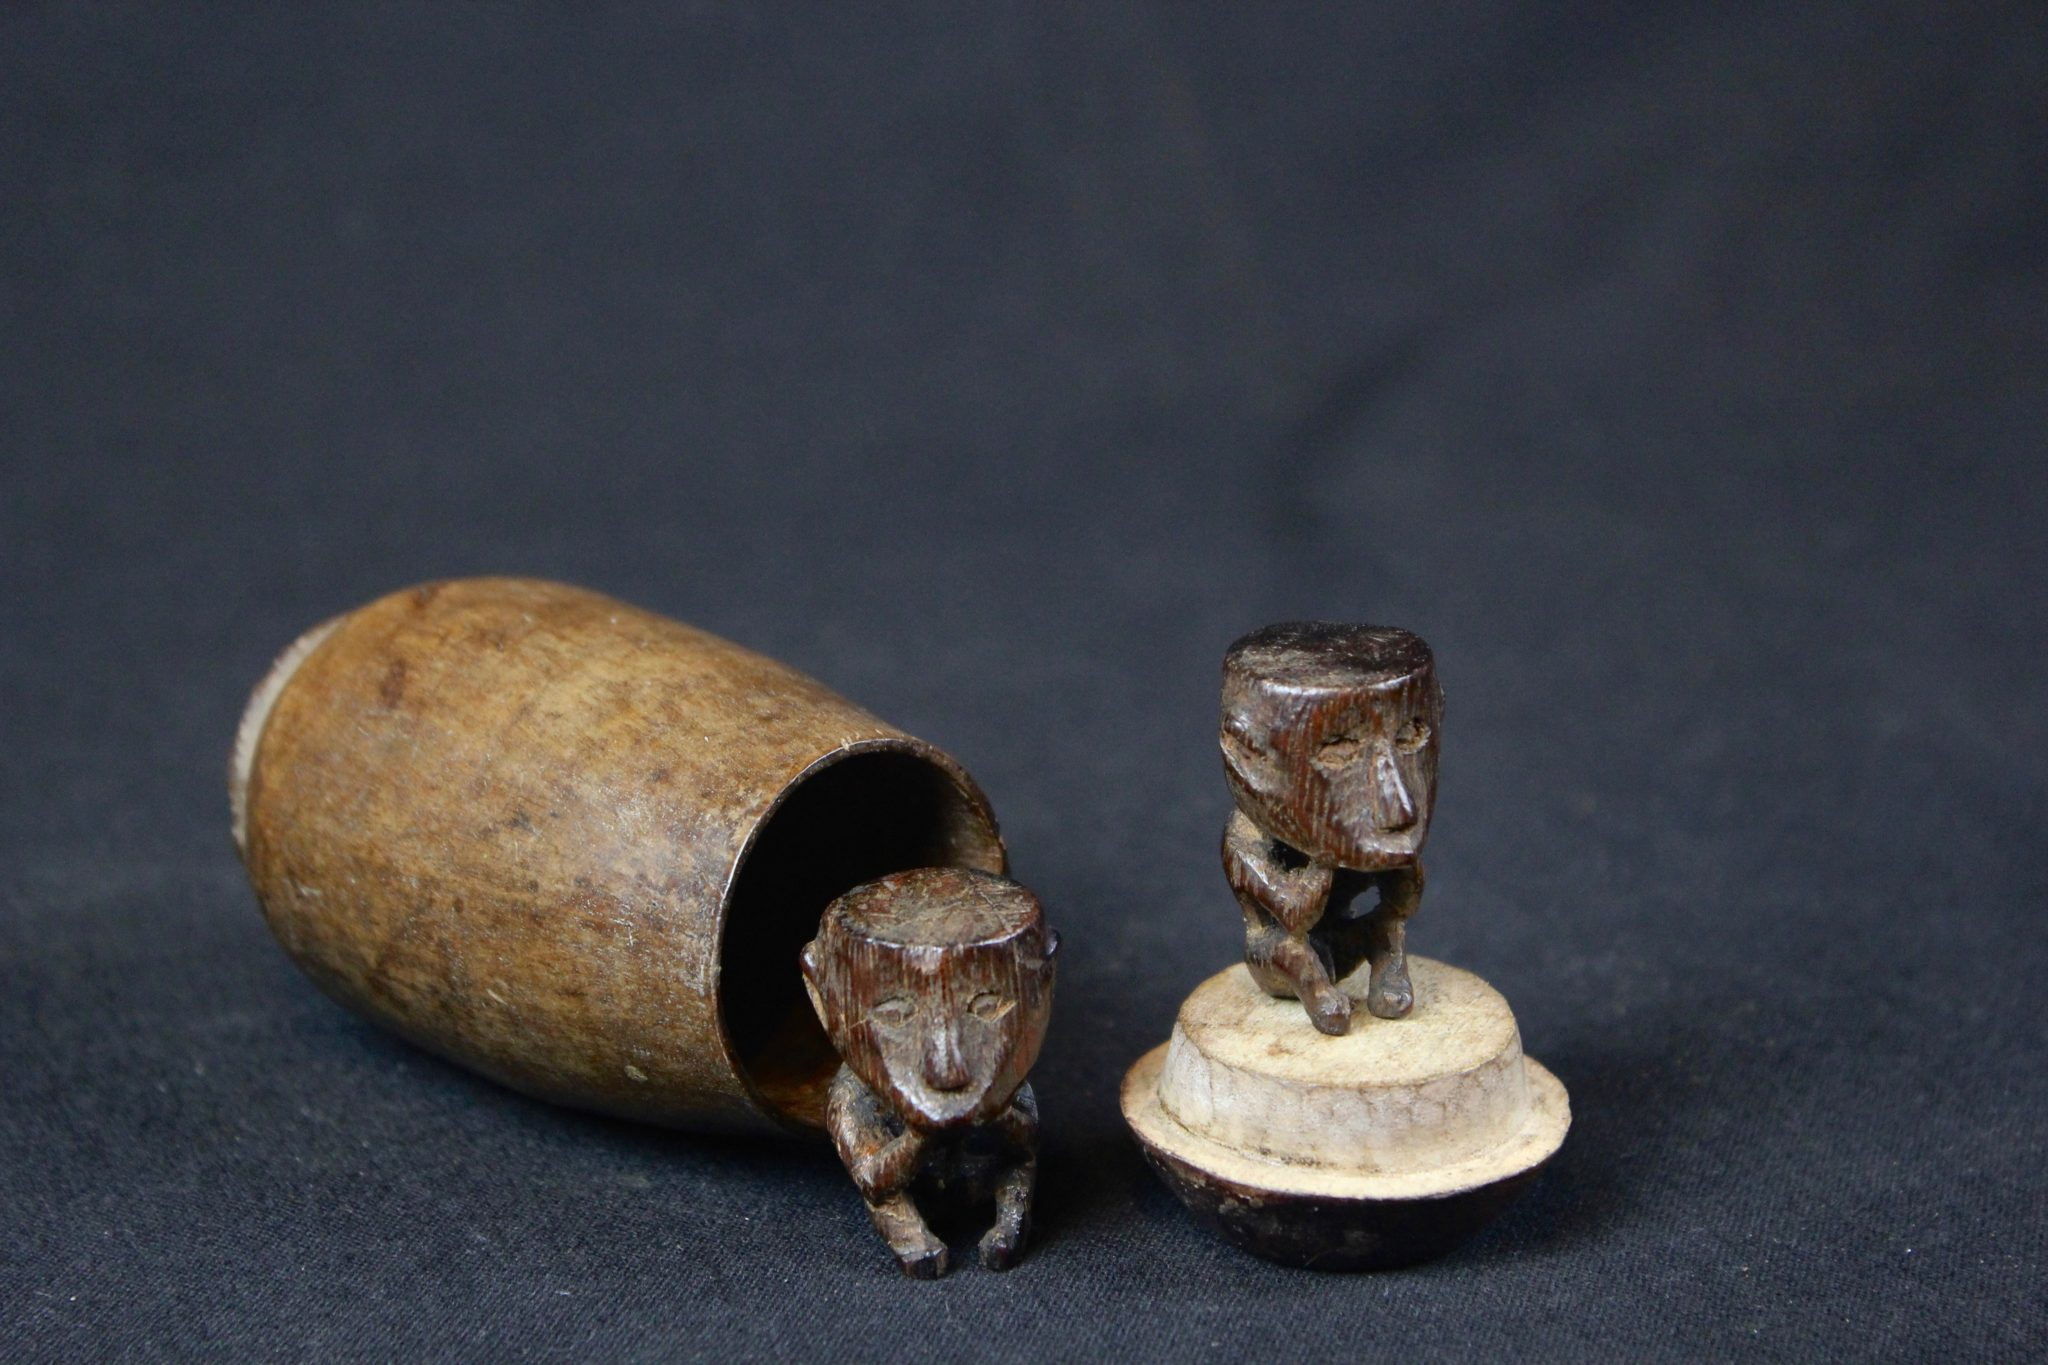 """Shaman Charms, West Sumba Island, Lesser Sunda Islands, Indonesia, Lamboya village, Early 20th c, Wood, smooth patina from use and age. Healing amulets. 3 ½"""" x 2"""" x 2"""" (container); 1 ¼"""" x ¾' x ½"""" (each figure), $375."""